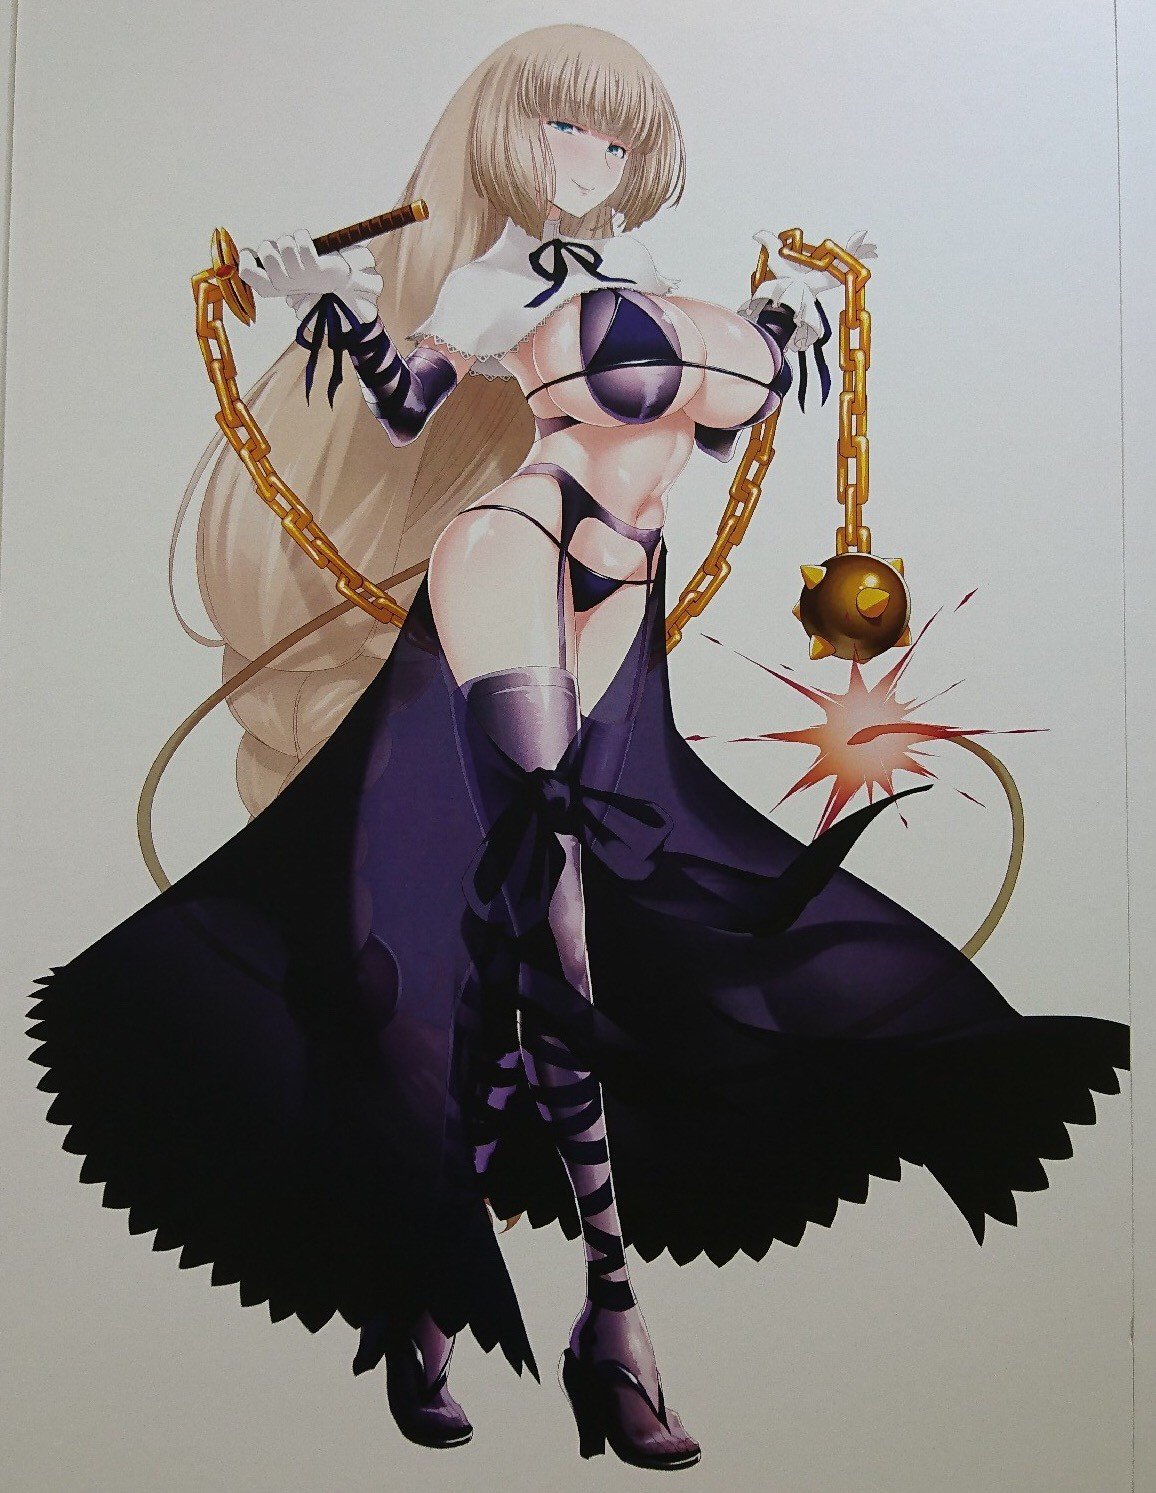 Sepia's figure artwork